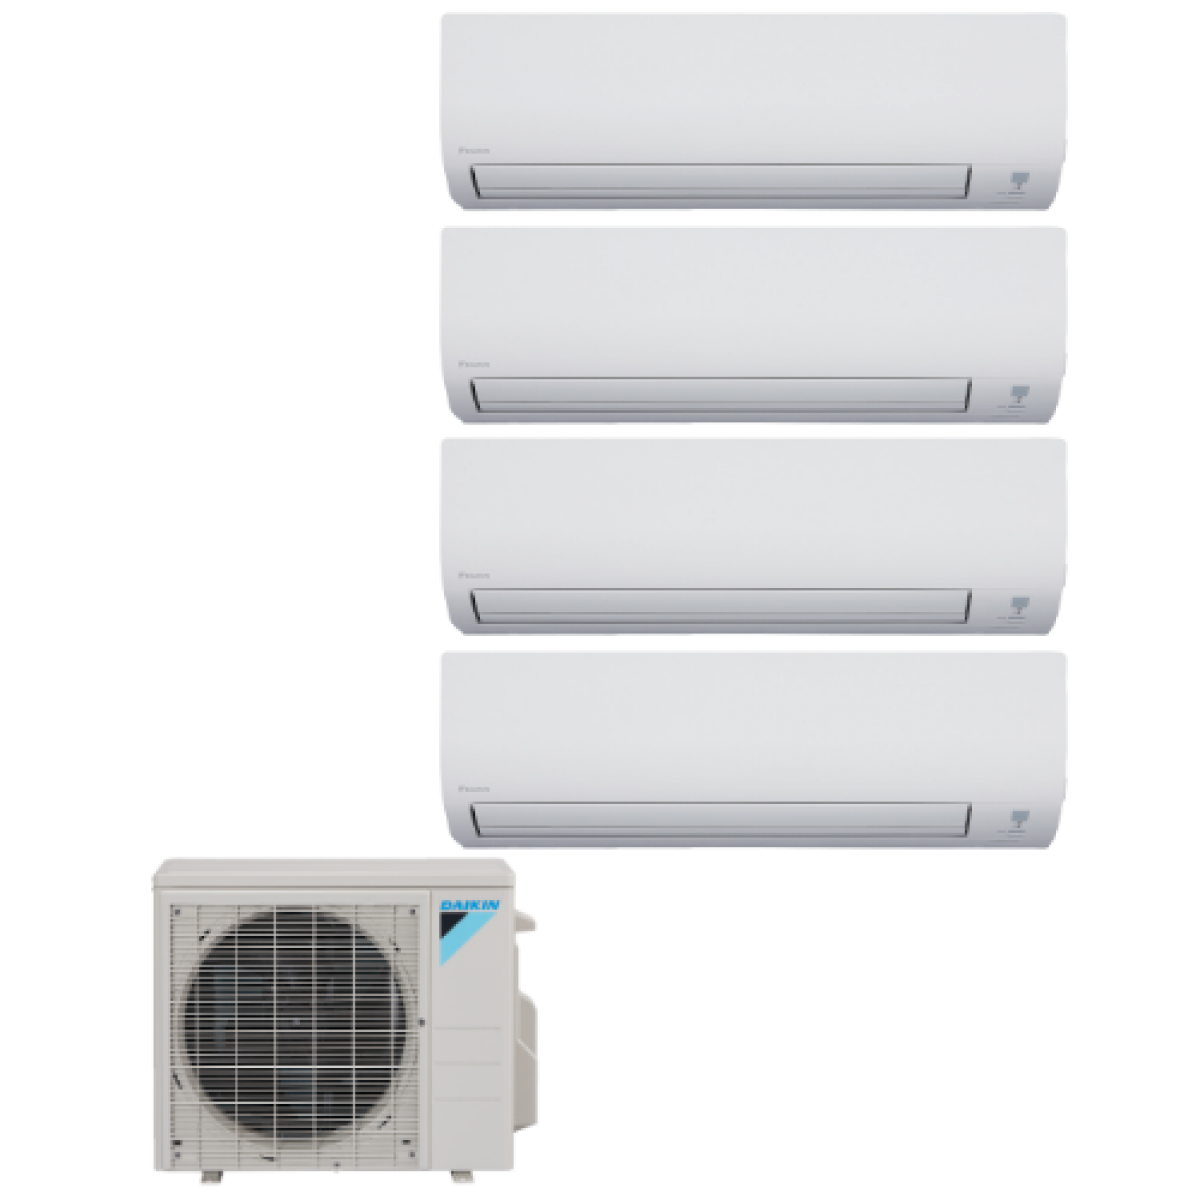 Daikin 4 zone 36k btu heat pump with four 4 9k btu Ductless ac